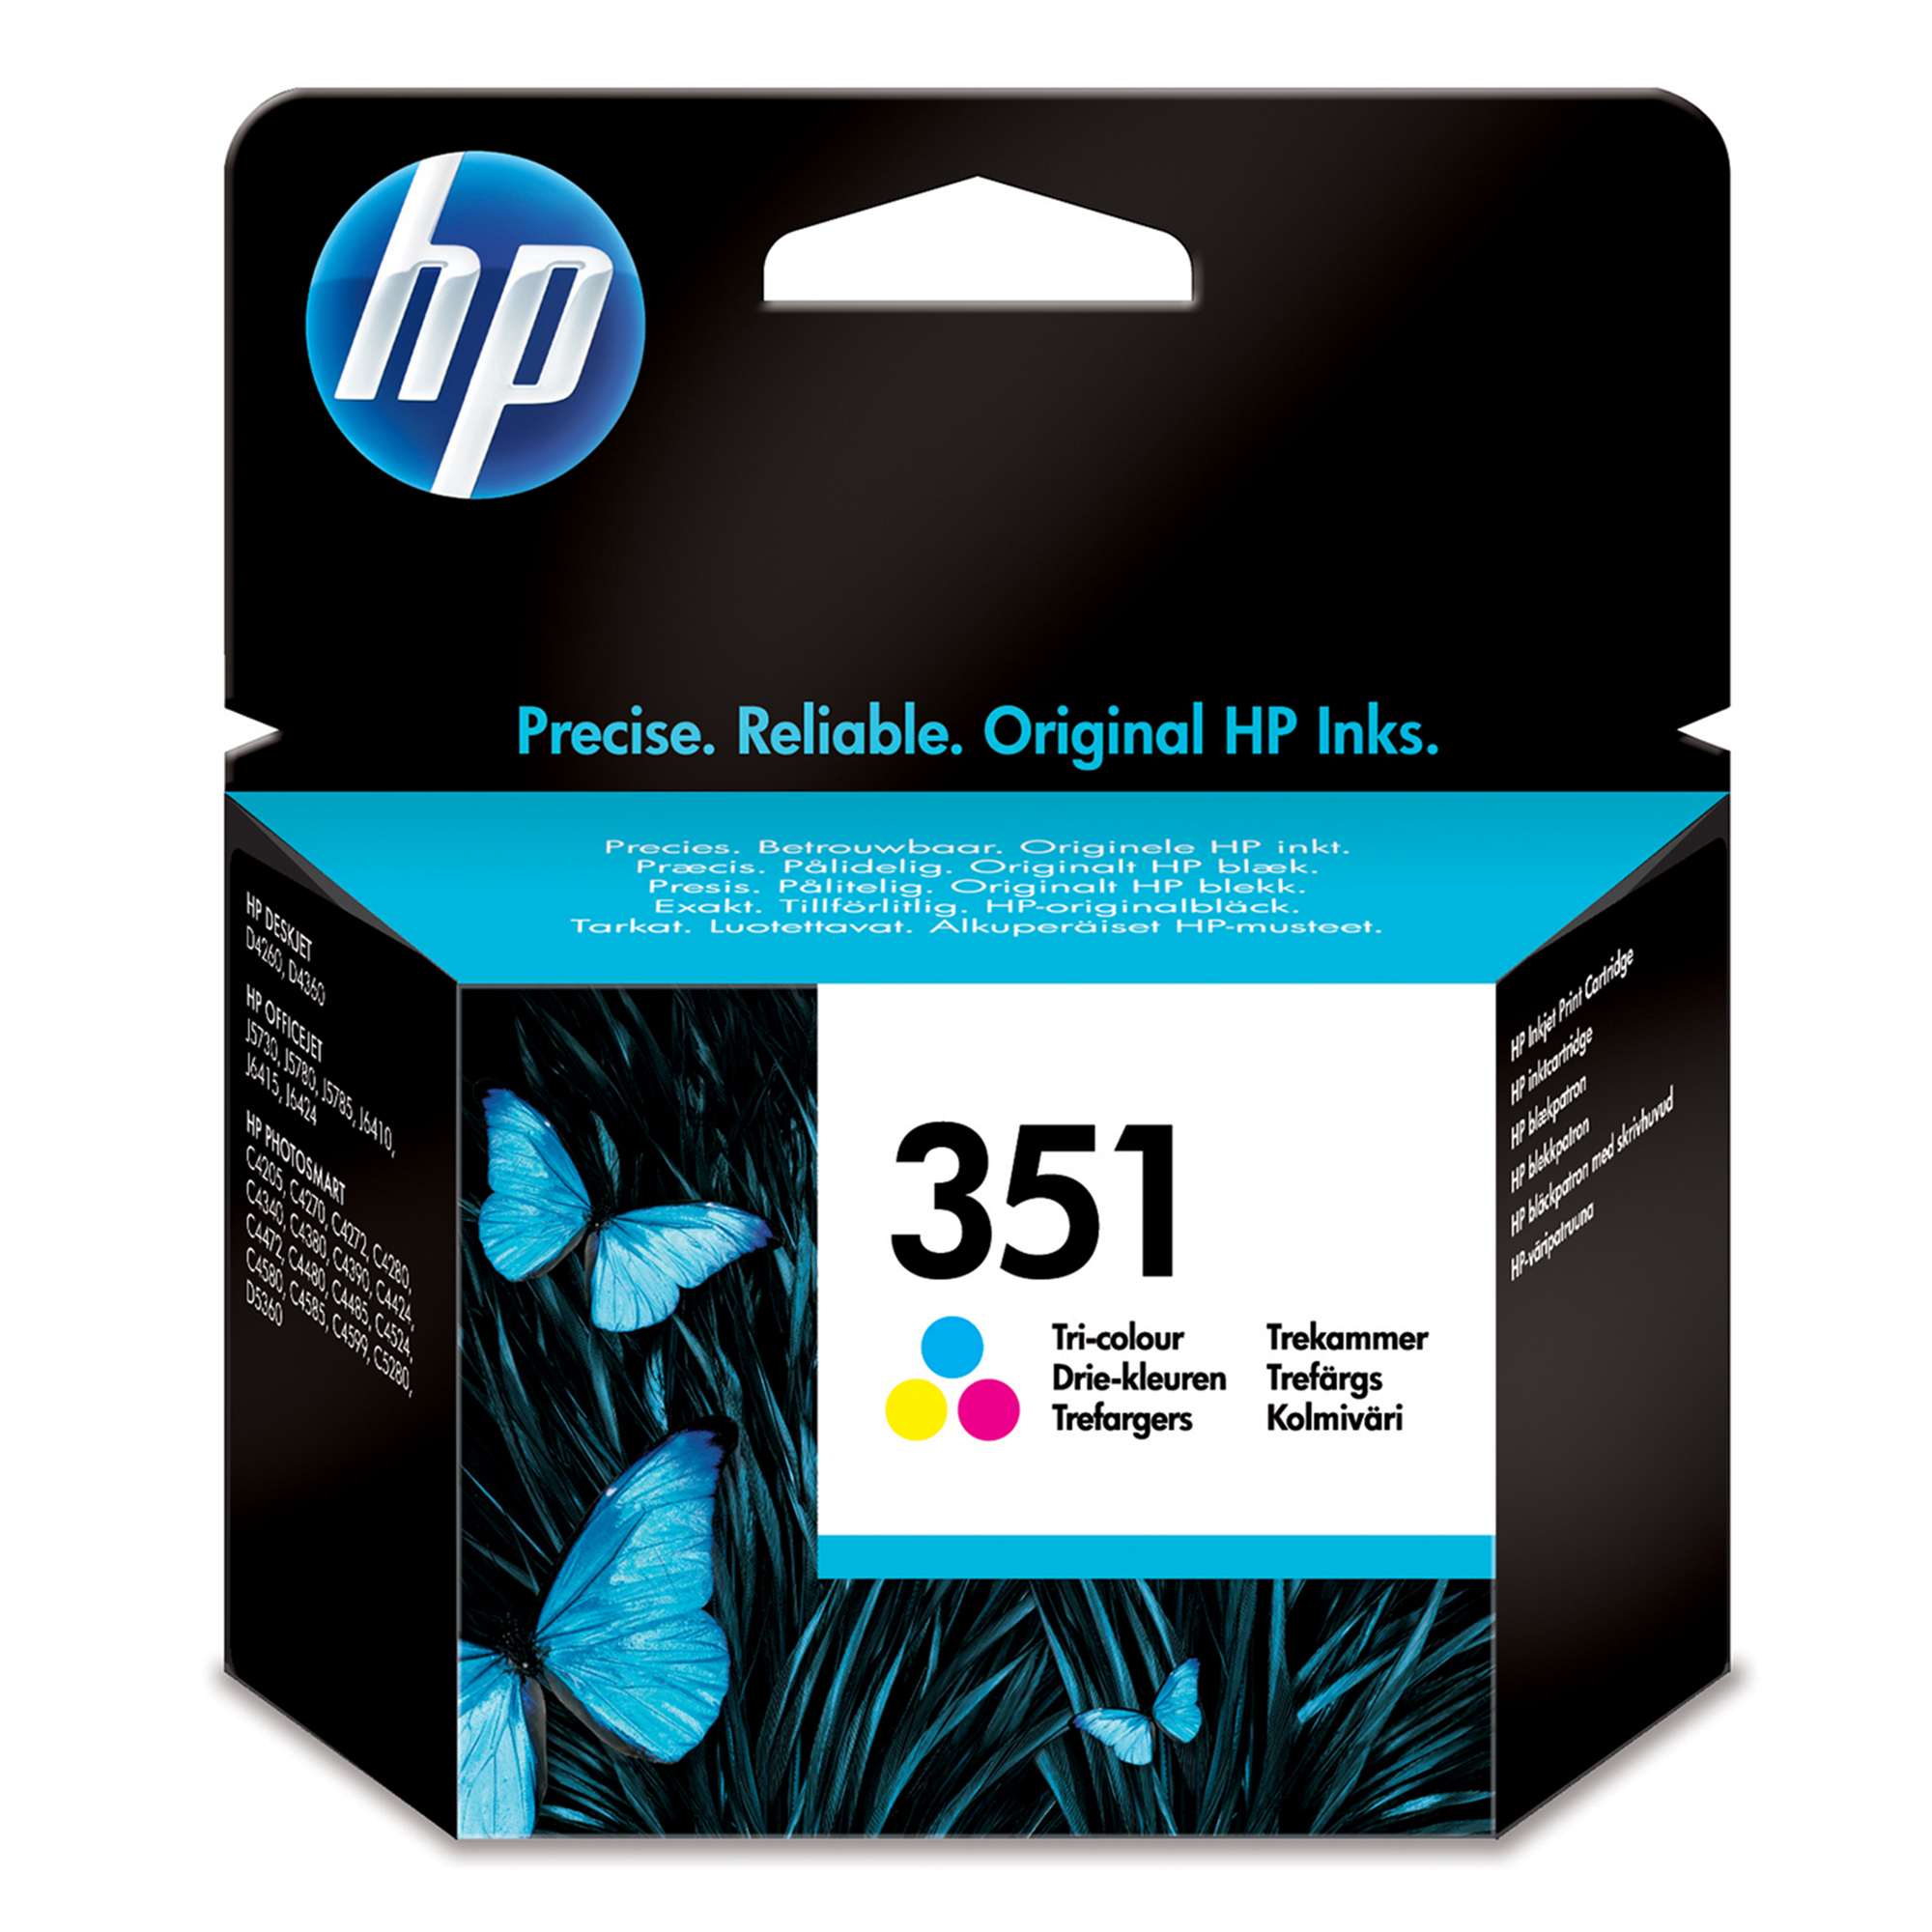 Hpcb337ee      Hp 351 Tri-colour Inkjet       Hp 351 Tri-colour Inkjet Print Cartridge With Vivera Inks    - UF01